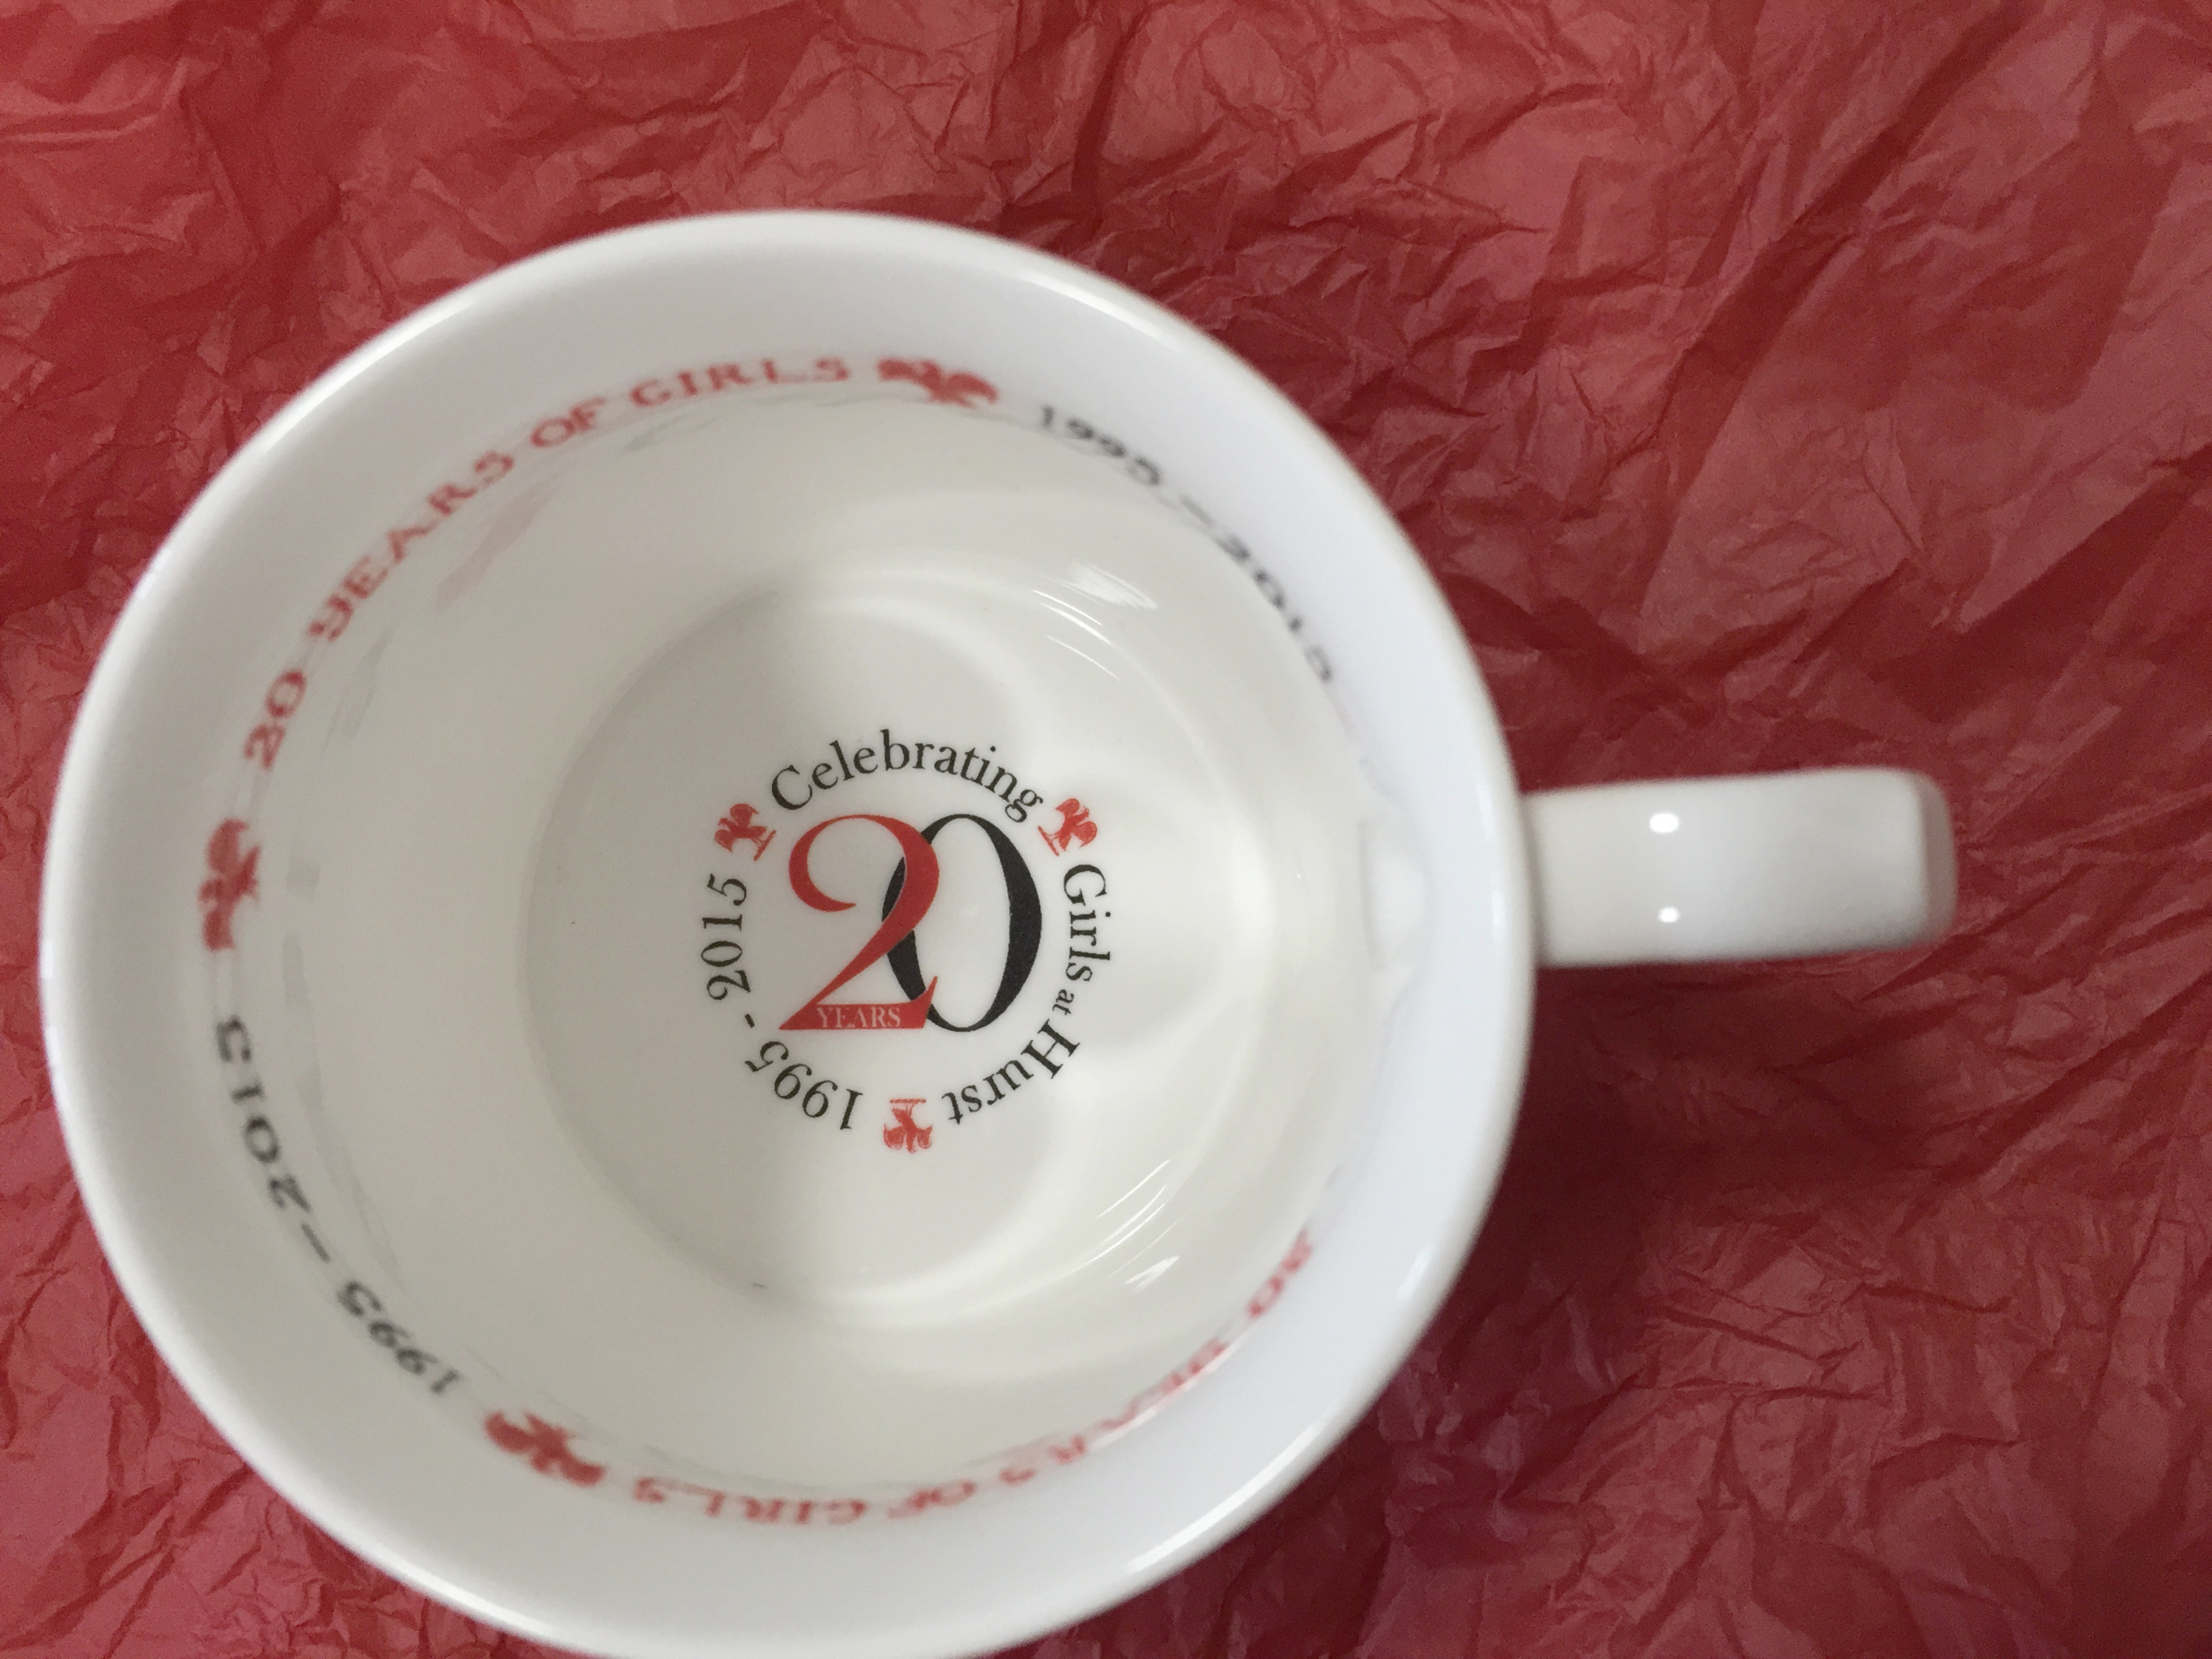 20 Years of girls mug inside